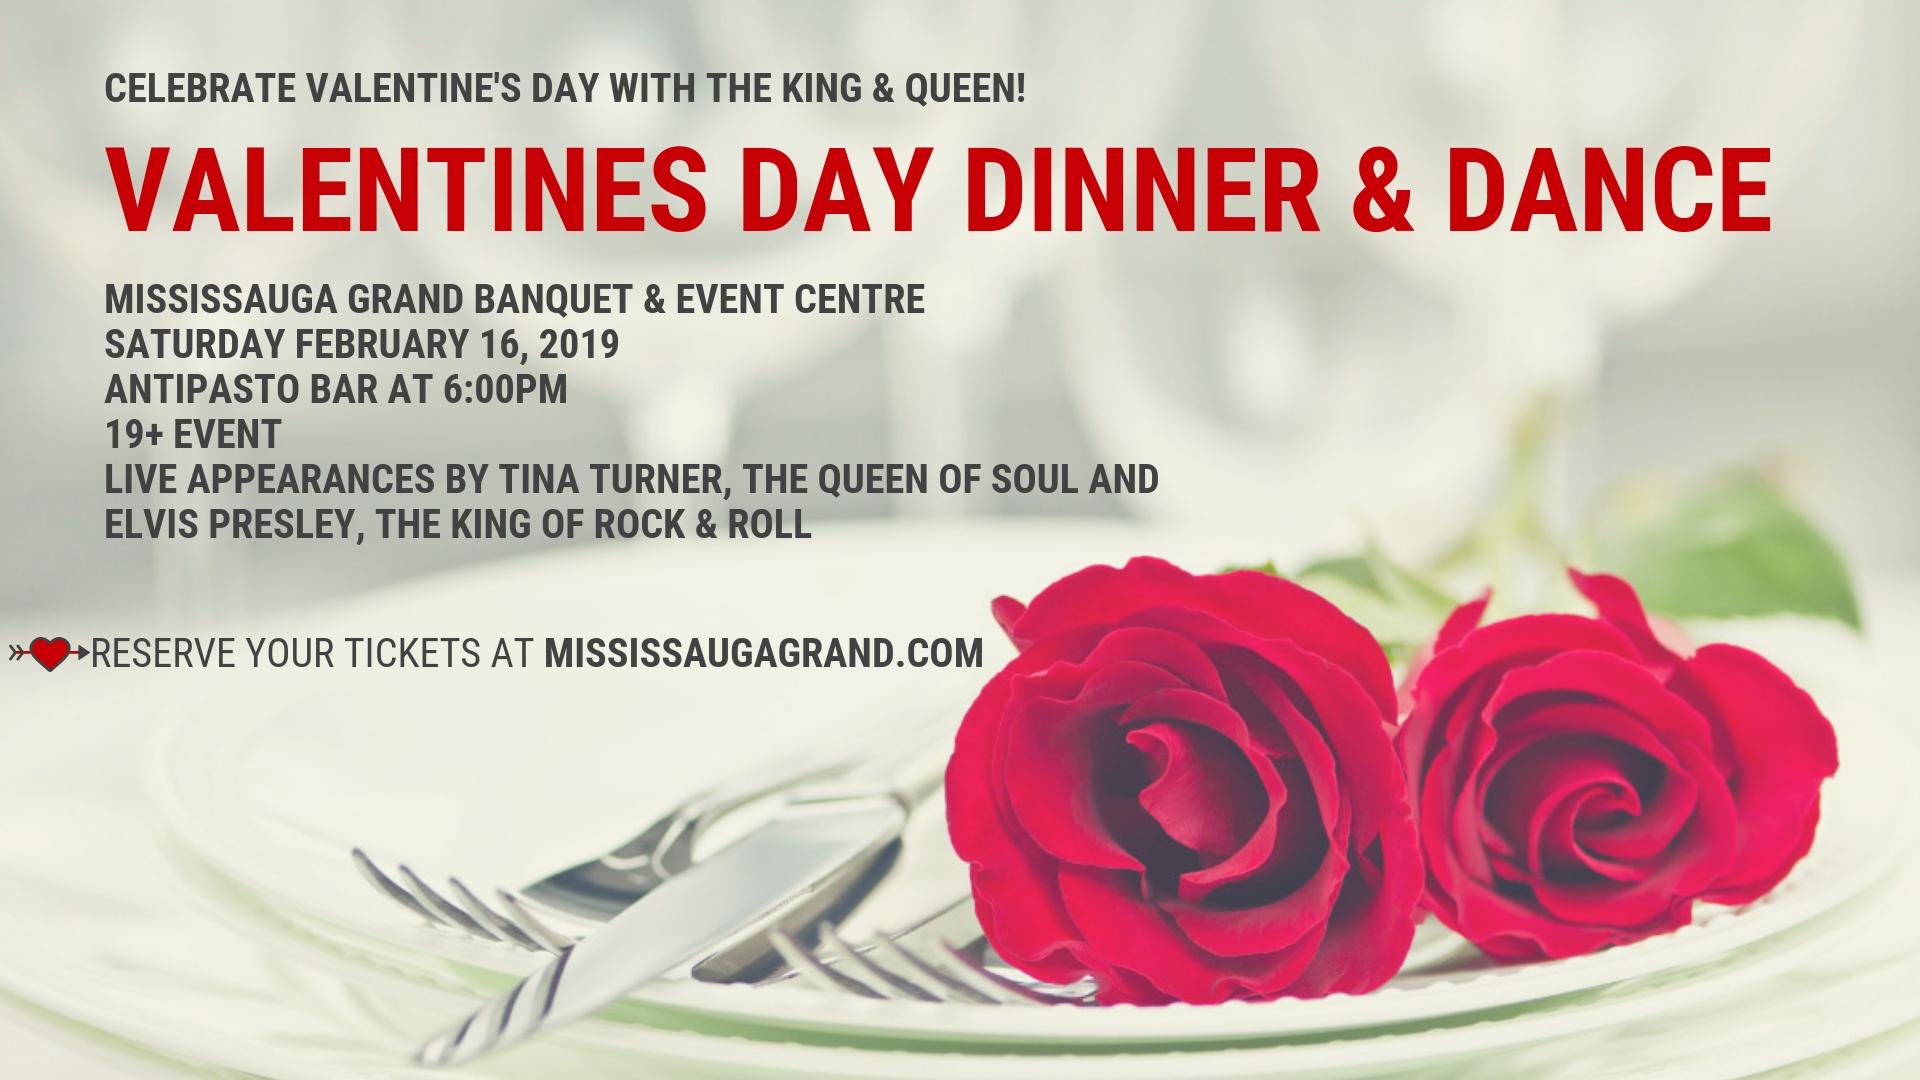 FB-Mississauga-event-Valentines-dinner-dance-banquet-hall-halls-events-february